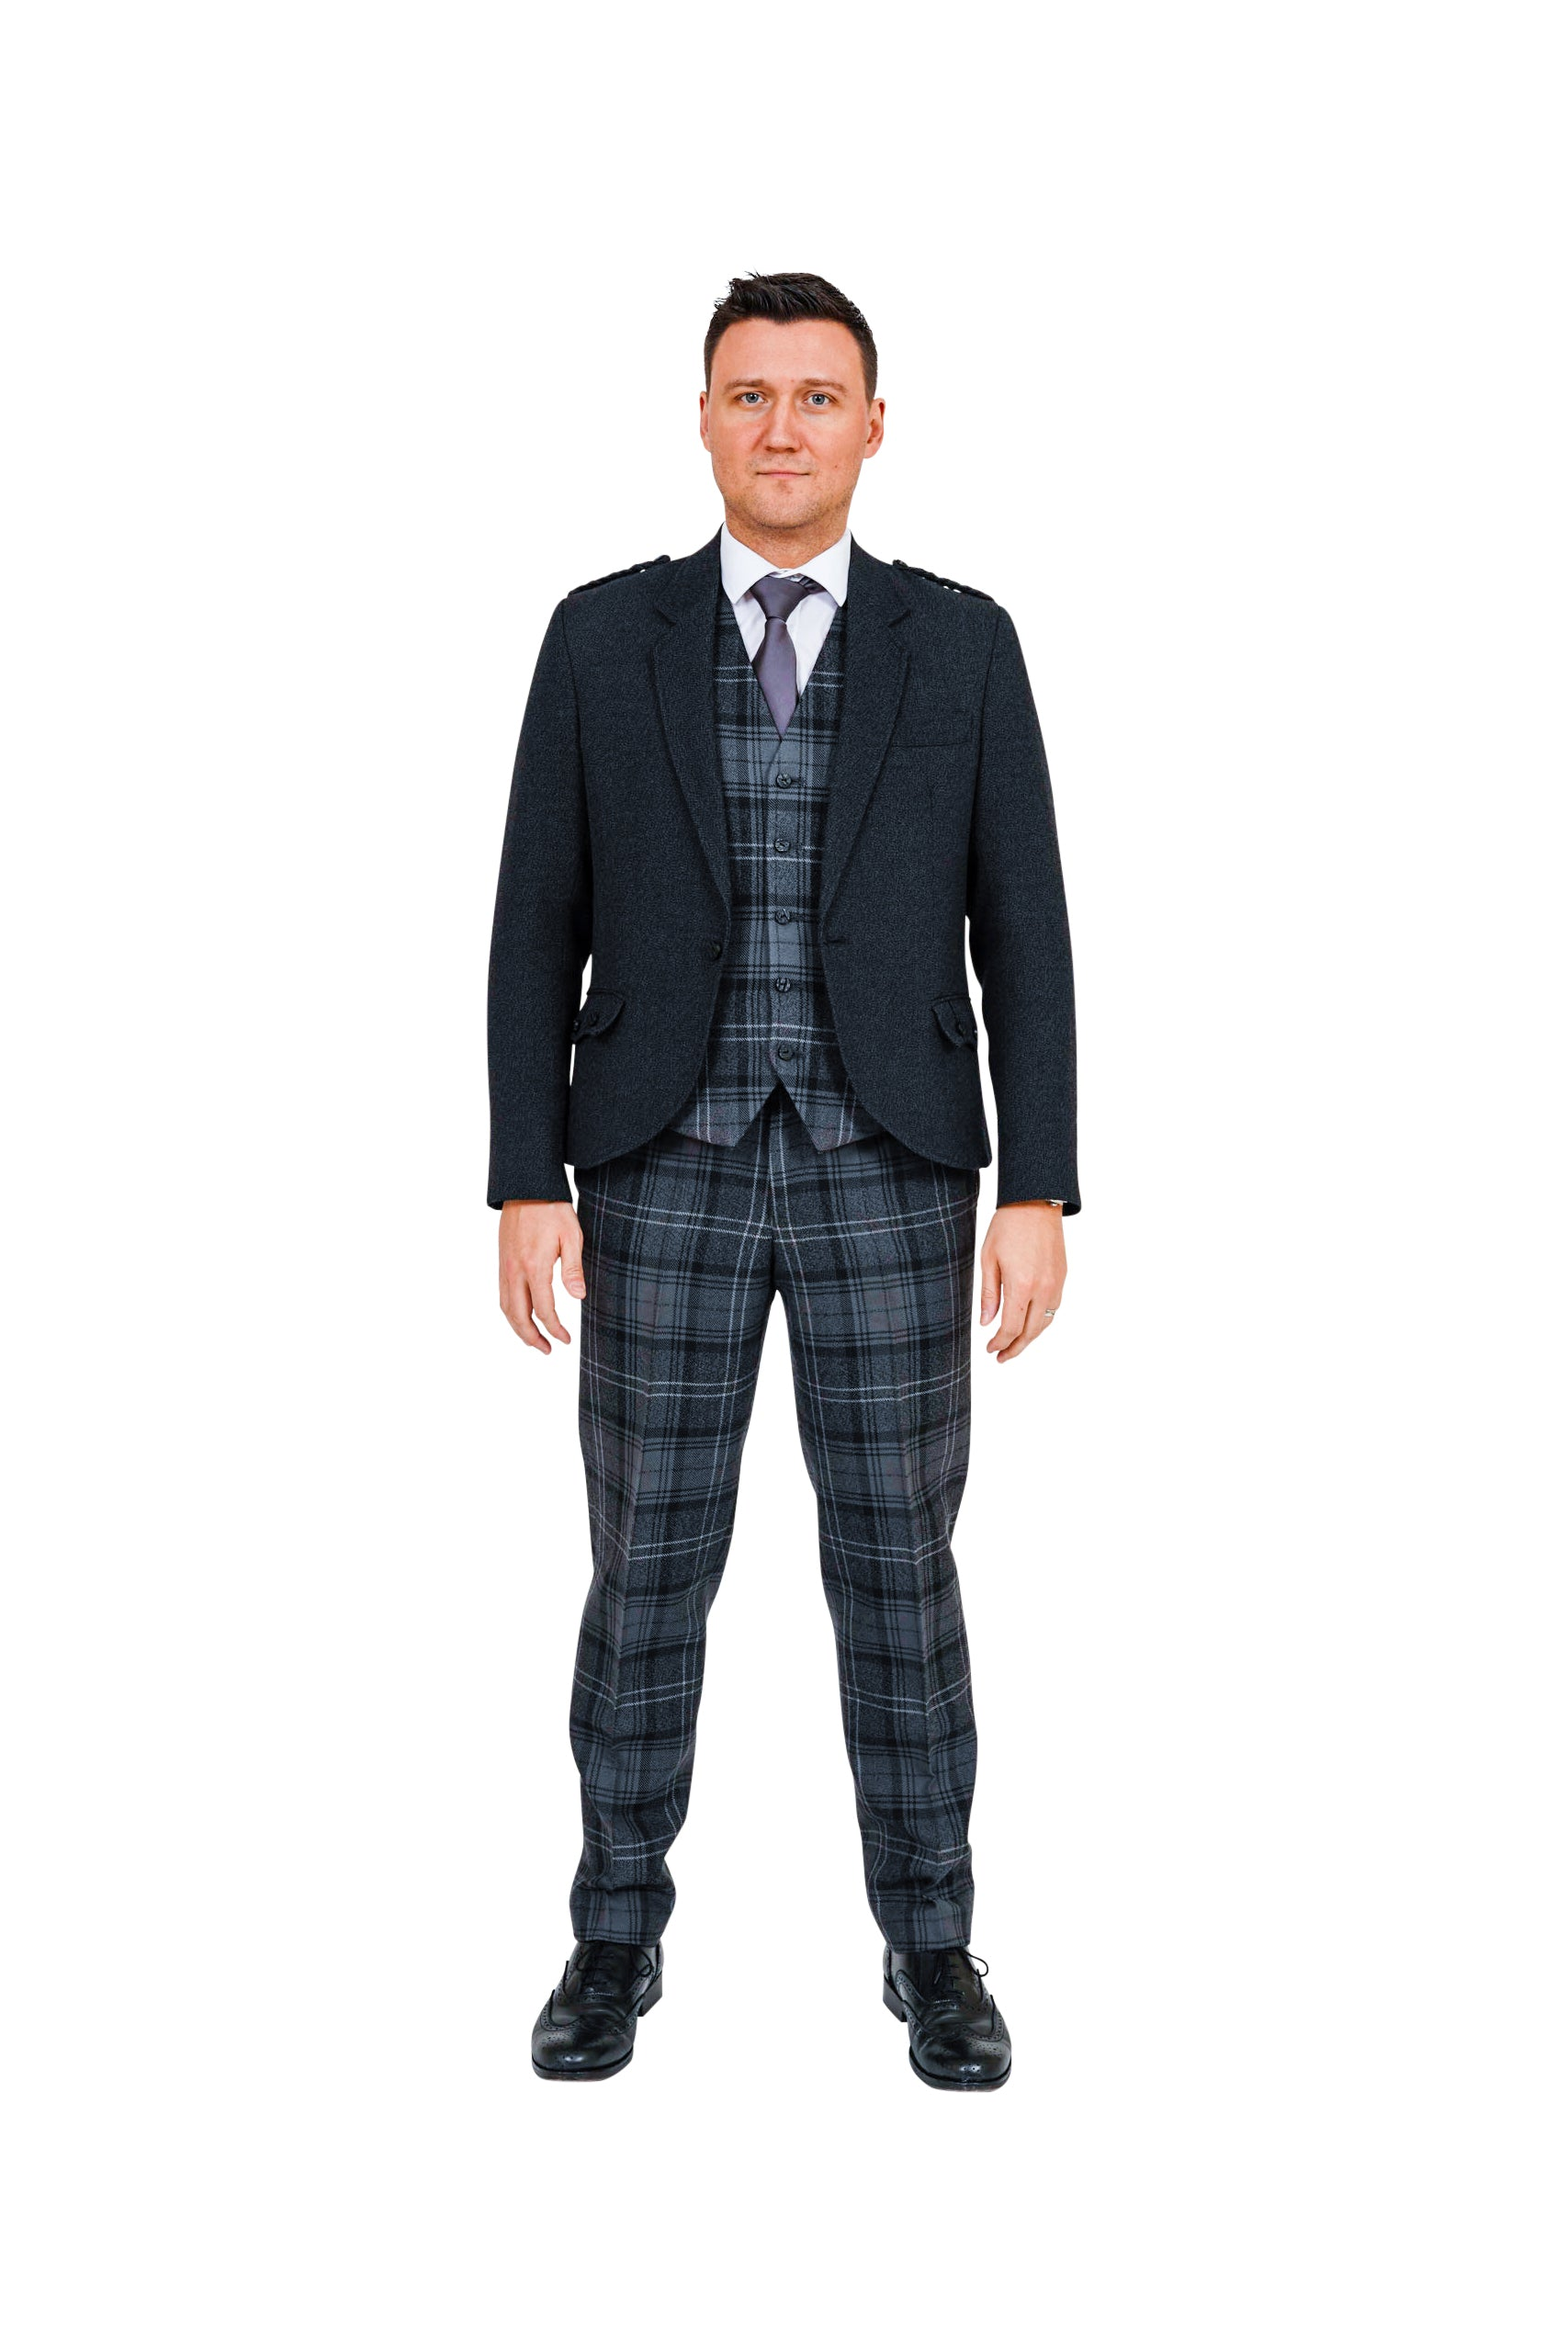 Charcoal crail jacket with Highland Granite tartan trews and waistcoat - available to hire from Anderson Kilts Dumfries